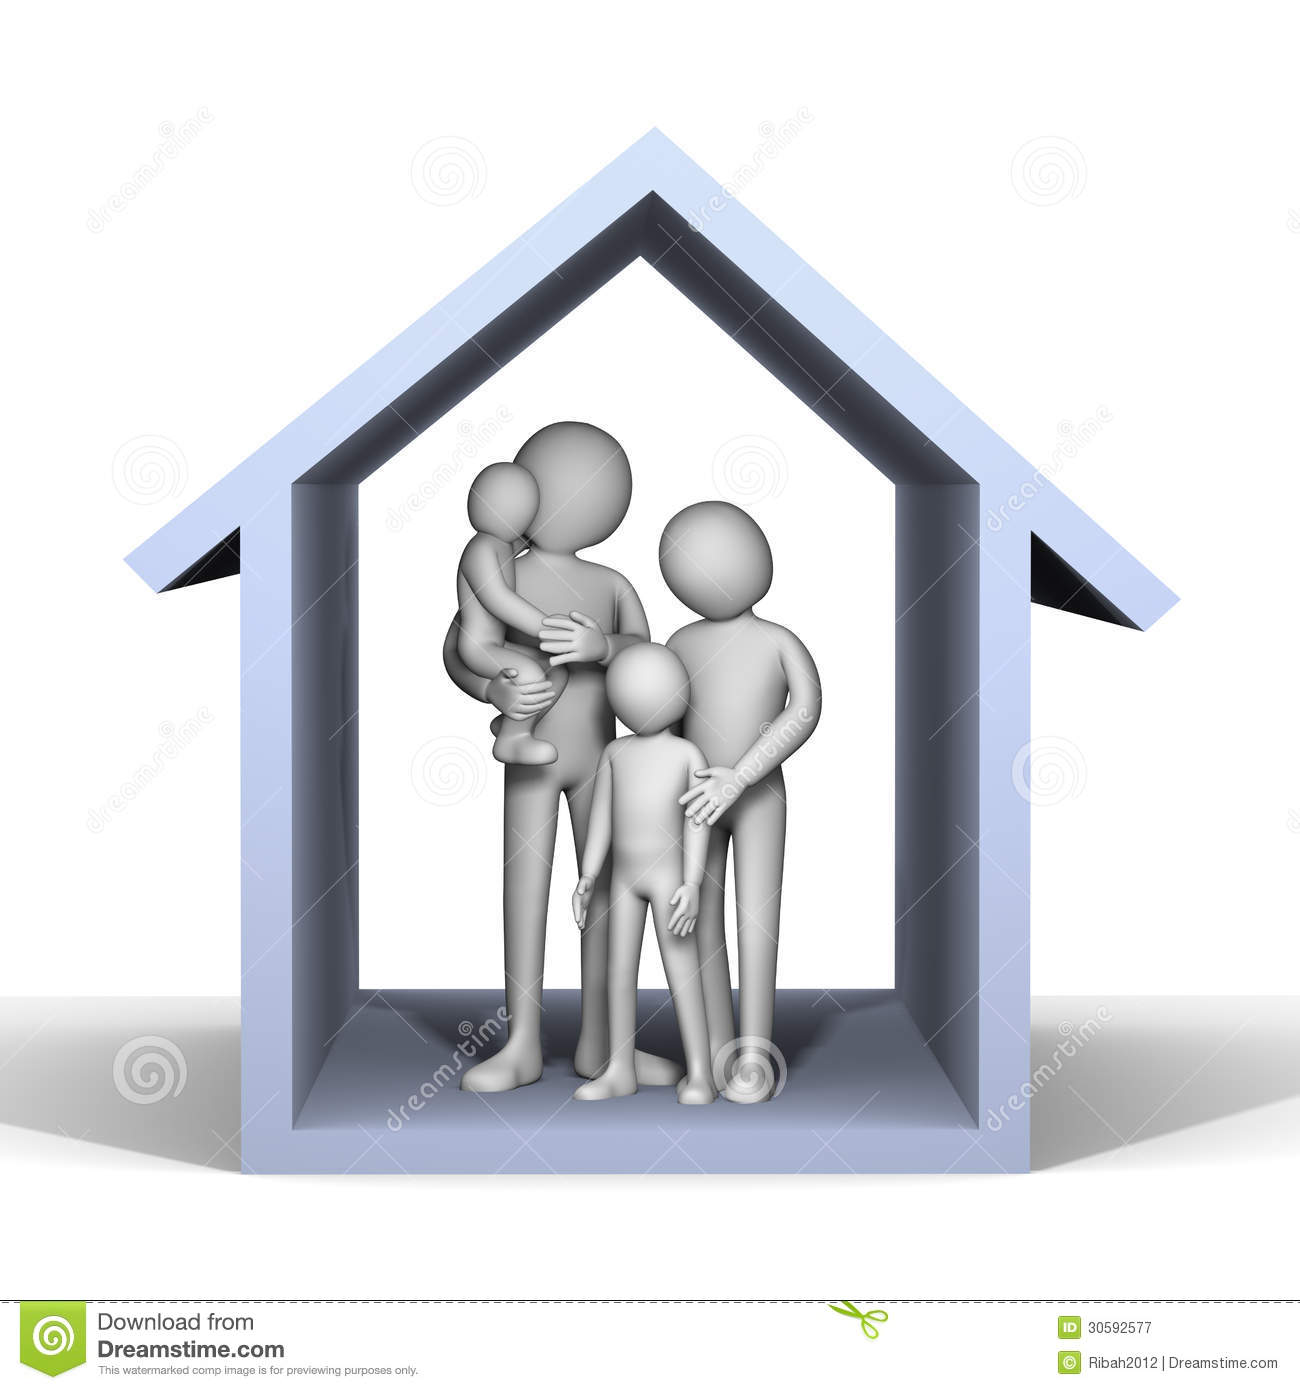 Free Software For You Free Download Sweet Home 3d: 3d Family In House Stock Illustration. Illustration Of